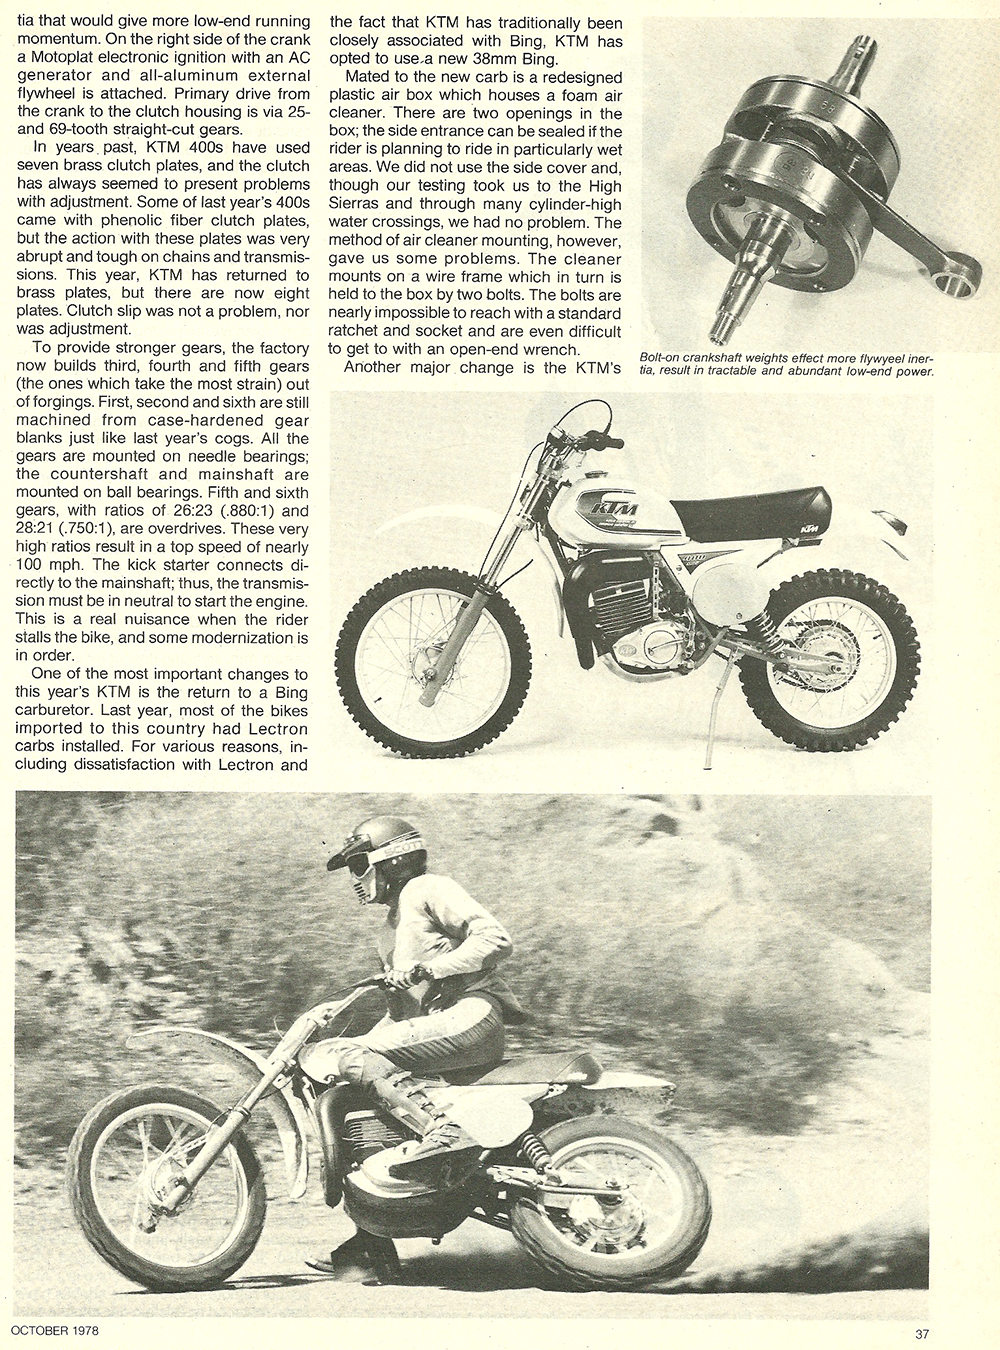 1978 KTM 400 MC5 road test 04.jpg